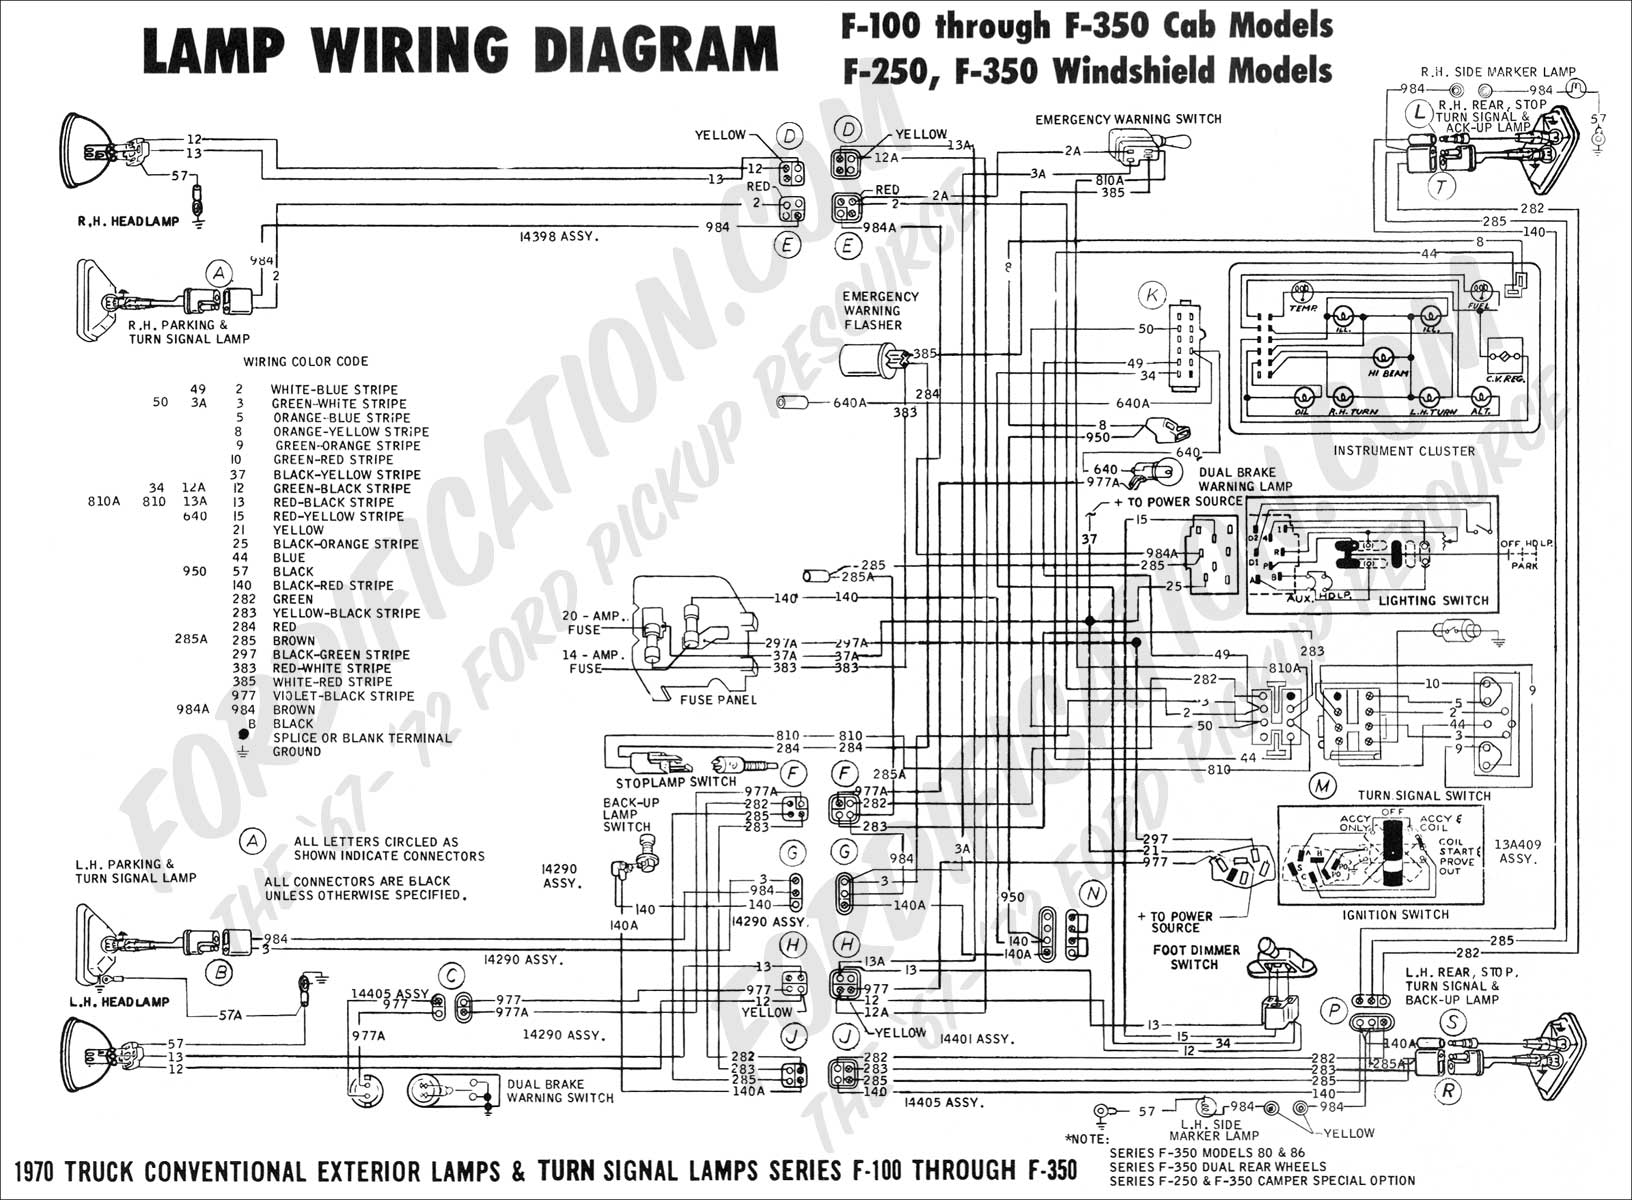 wiring diagram for 5 wire trailer plug with 1291890 Turn Signal Cam Wiring on Drl besides 8100 harness in addition 6fa2w Ford Ranger 4x4 Need Wiring Harness Diagram 1996 Ford furthermore Dashboard Wiring Diagram 2001 Buick Lesabre further 290649529359.